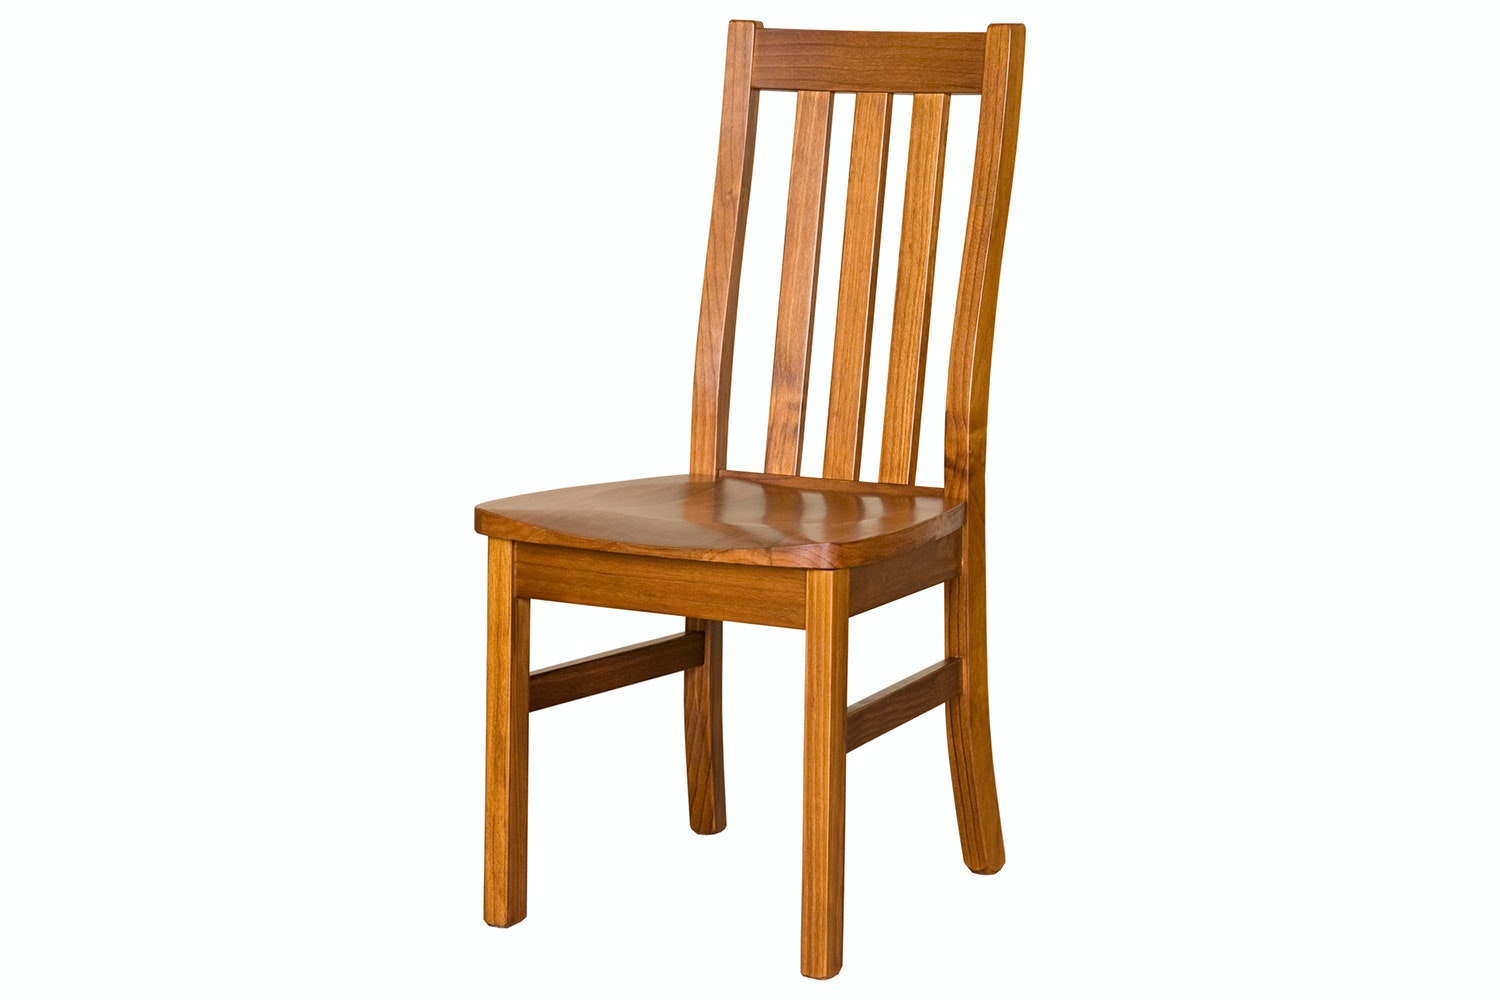 Ferngrove Solid Seat Dining Chair by Coastwood Furniture